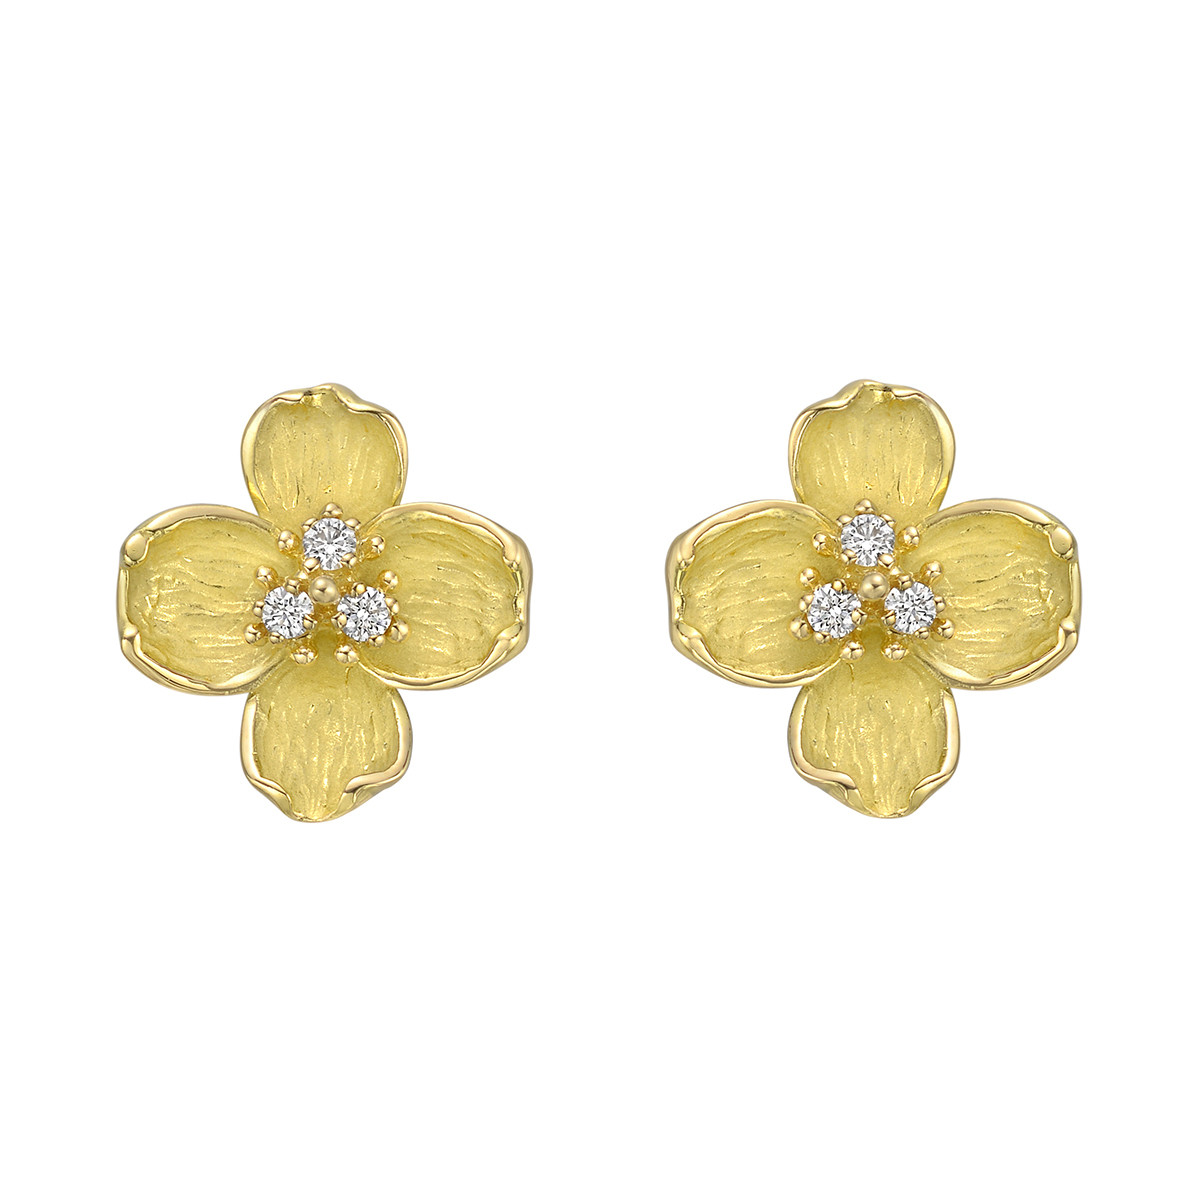 18k Yellow Gold & Diamond Flower Earrings